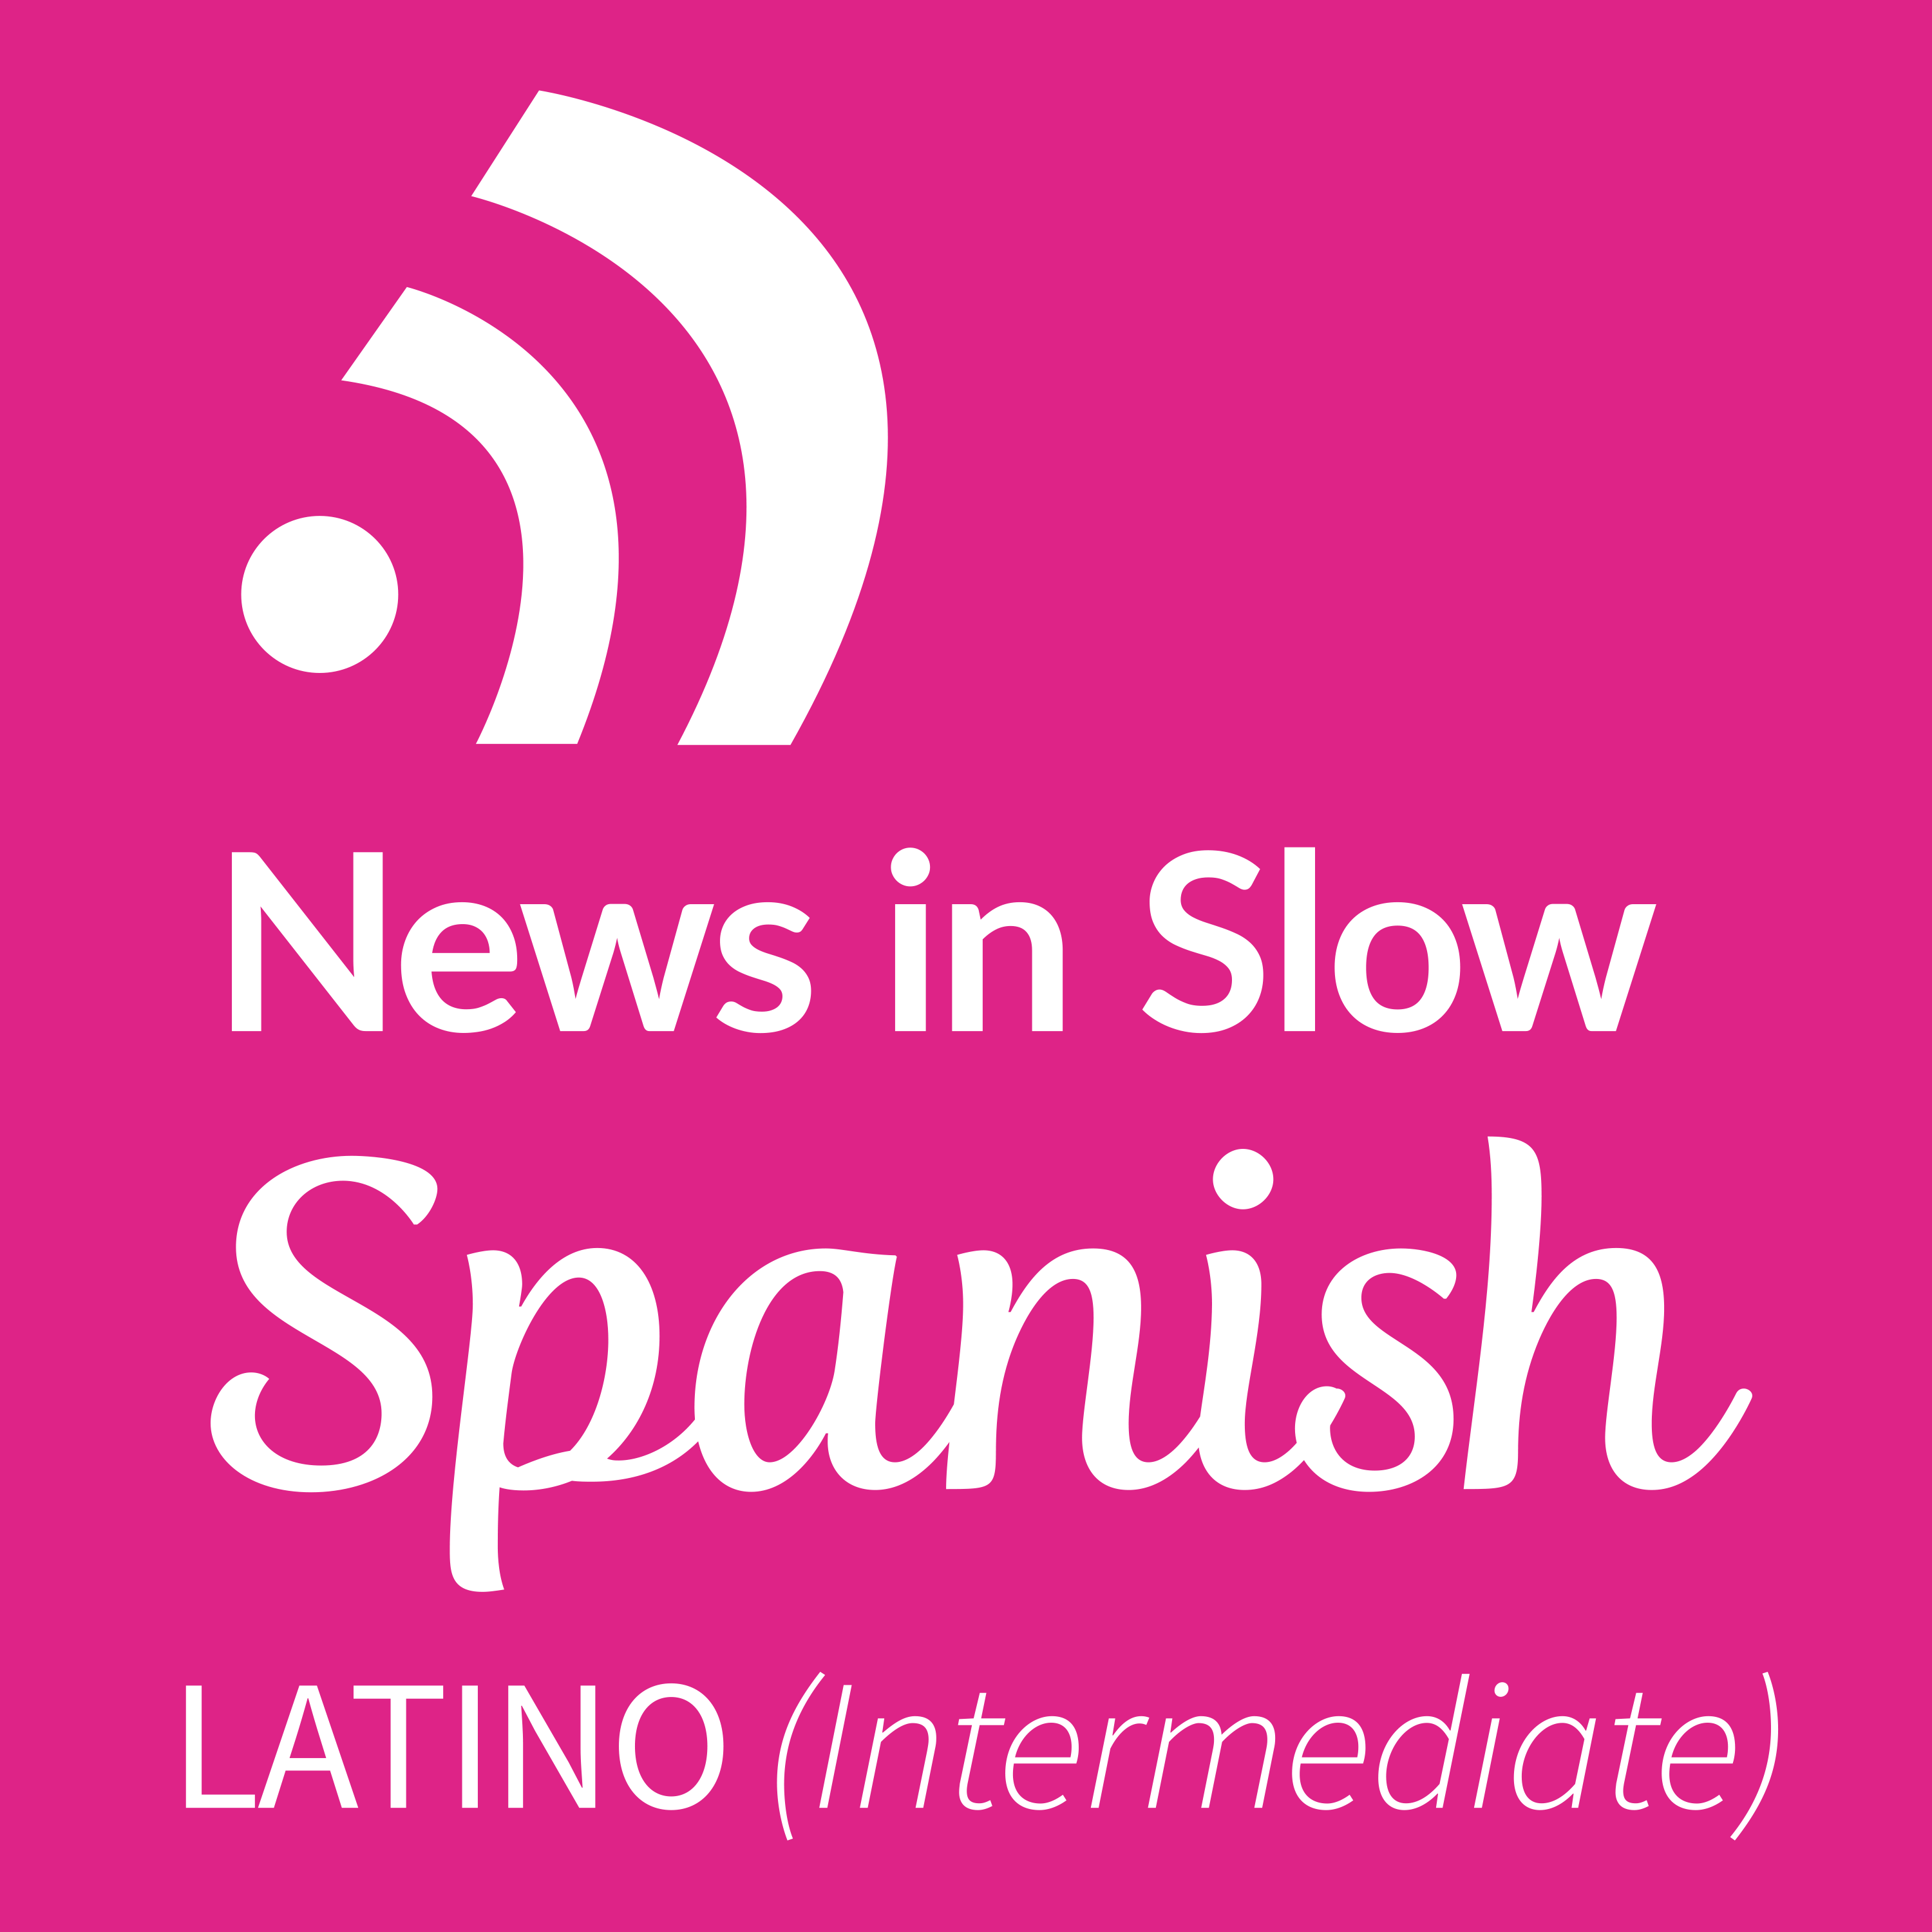 News in Slow Spanish Latino - # 148 - Spanish grammar, news and expressions